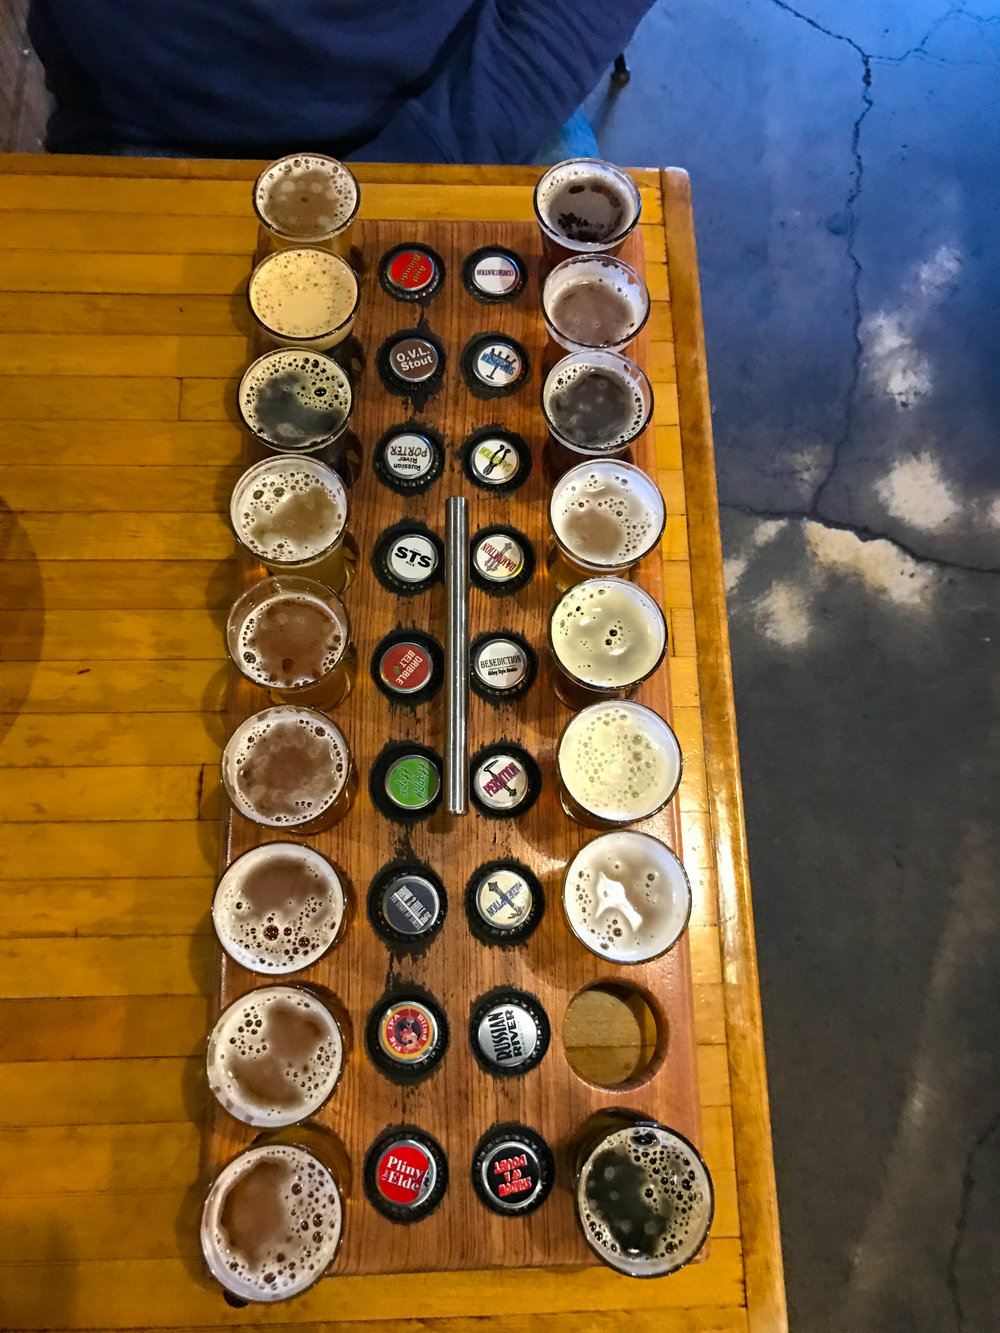 Russian River Brewery Tasters